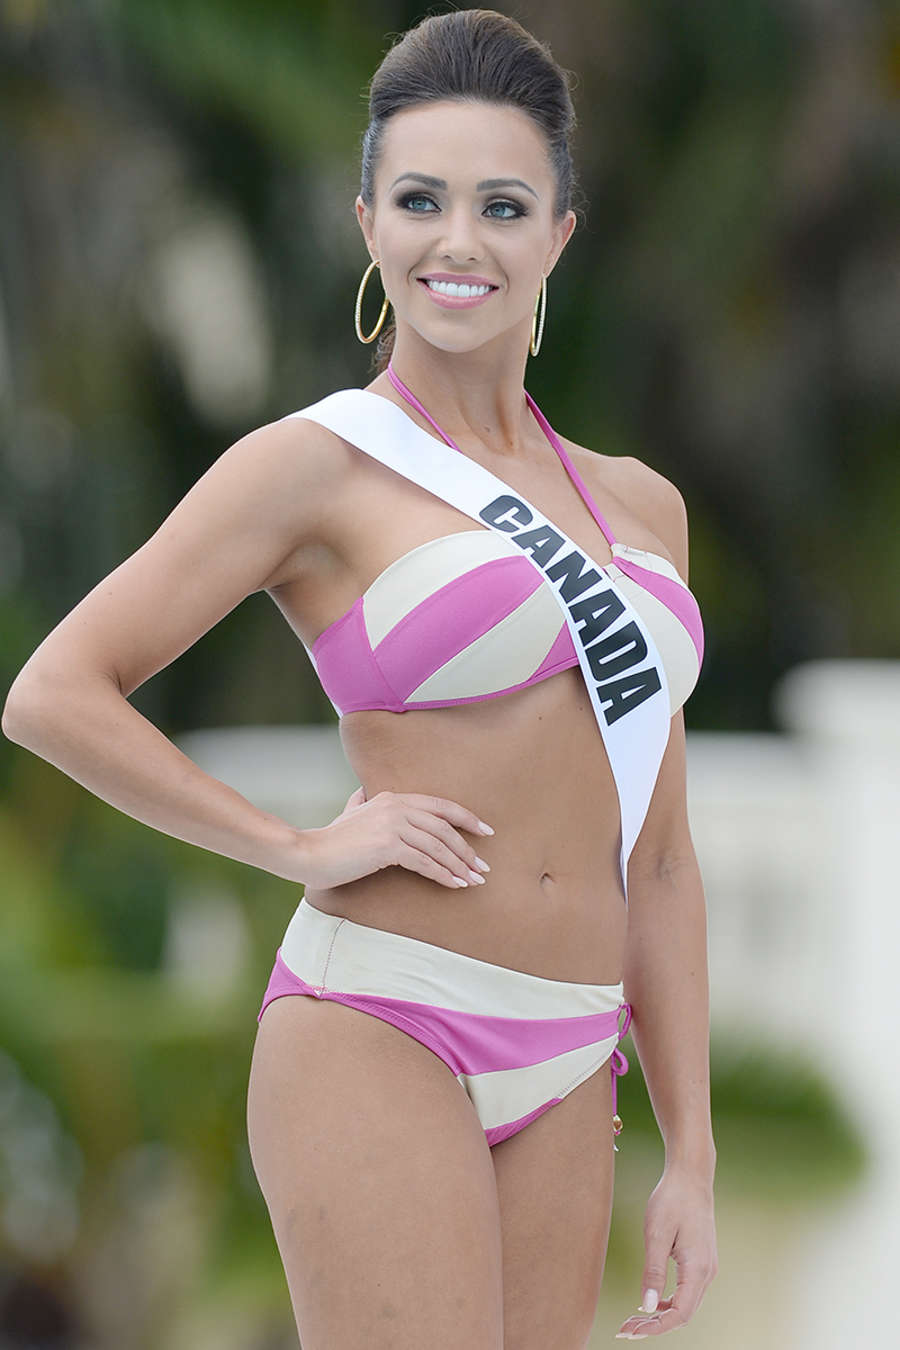 Miss universe bikini pictures, alabama oral sex law